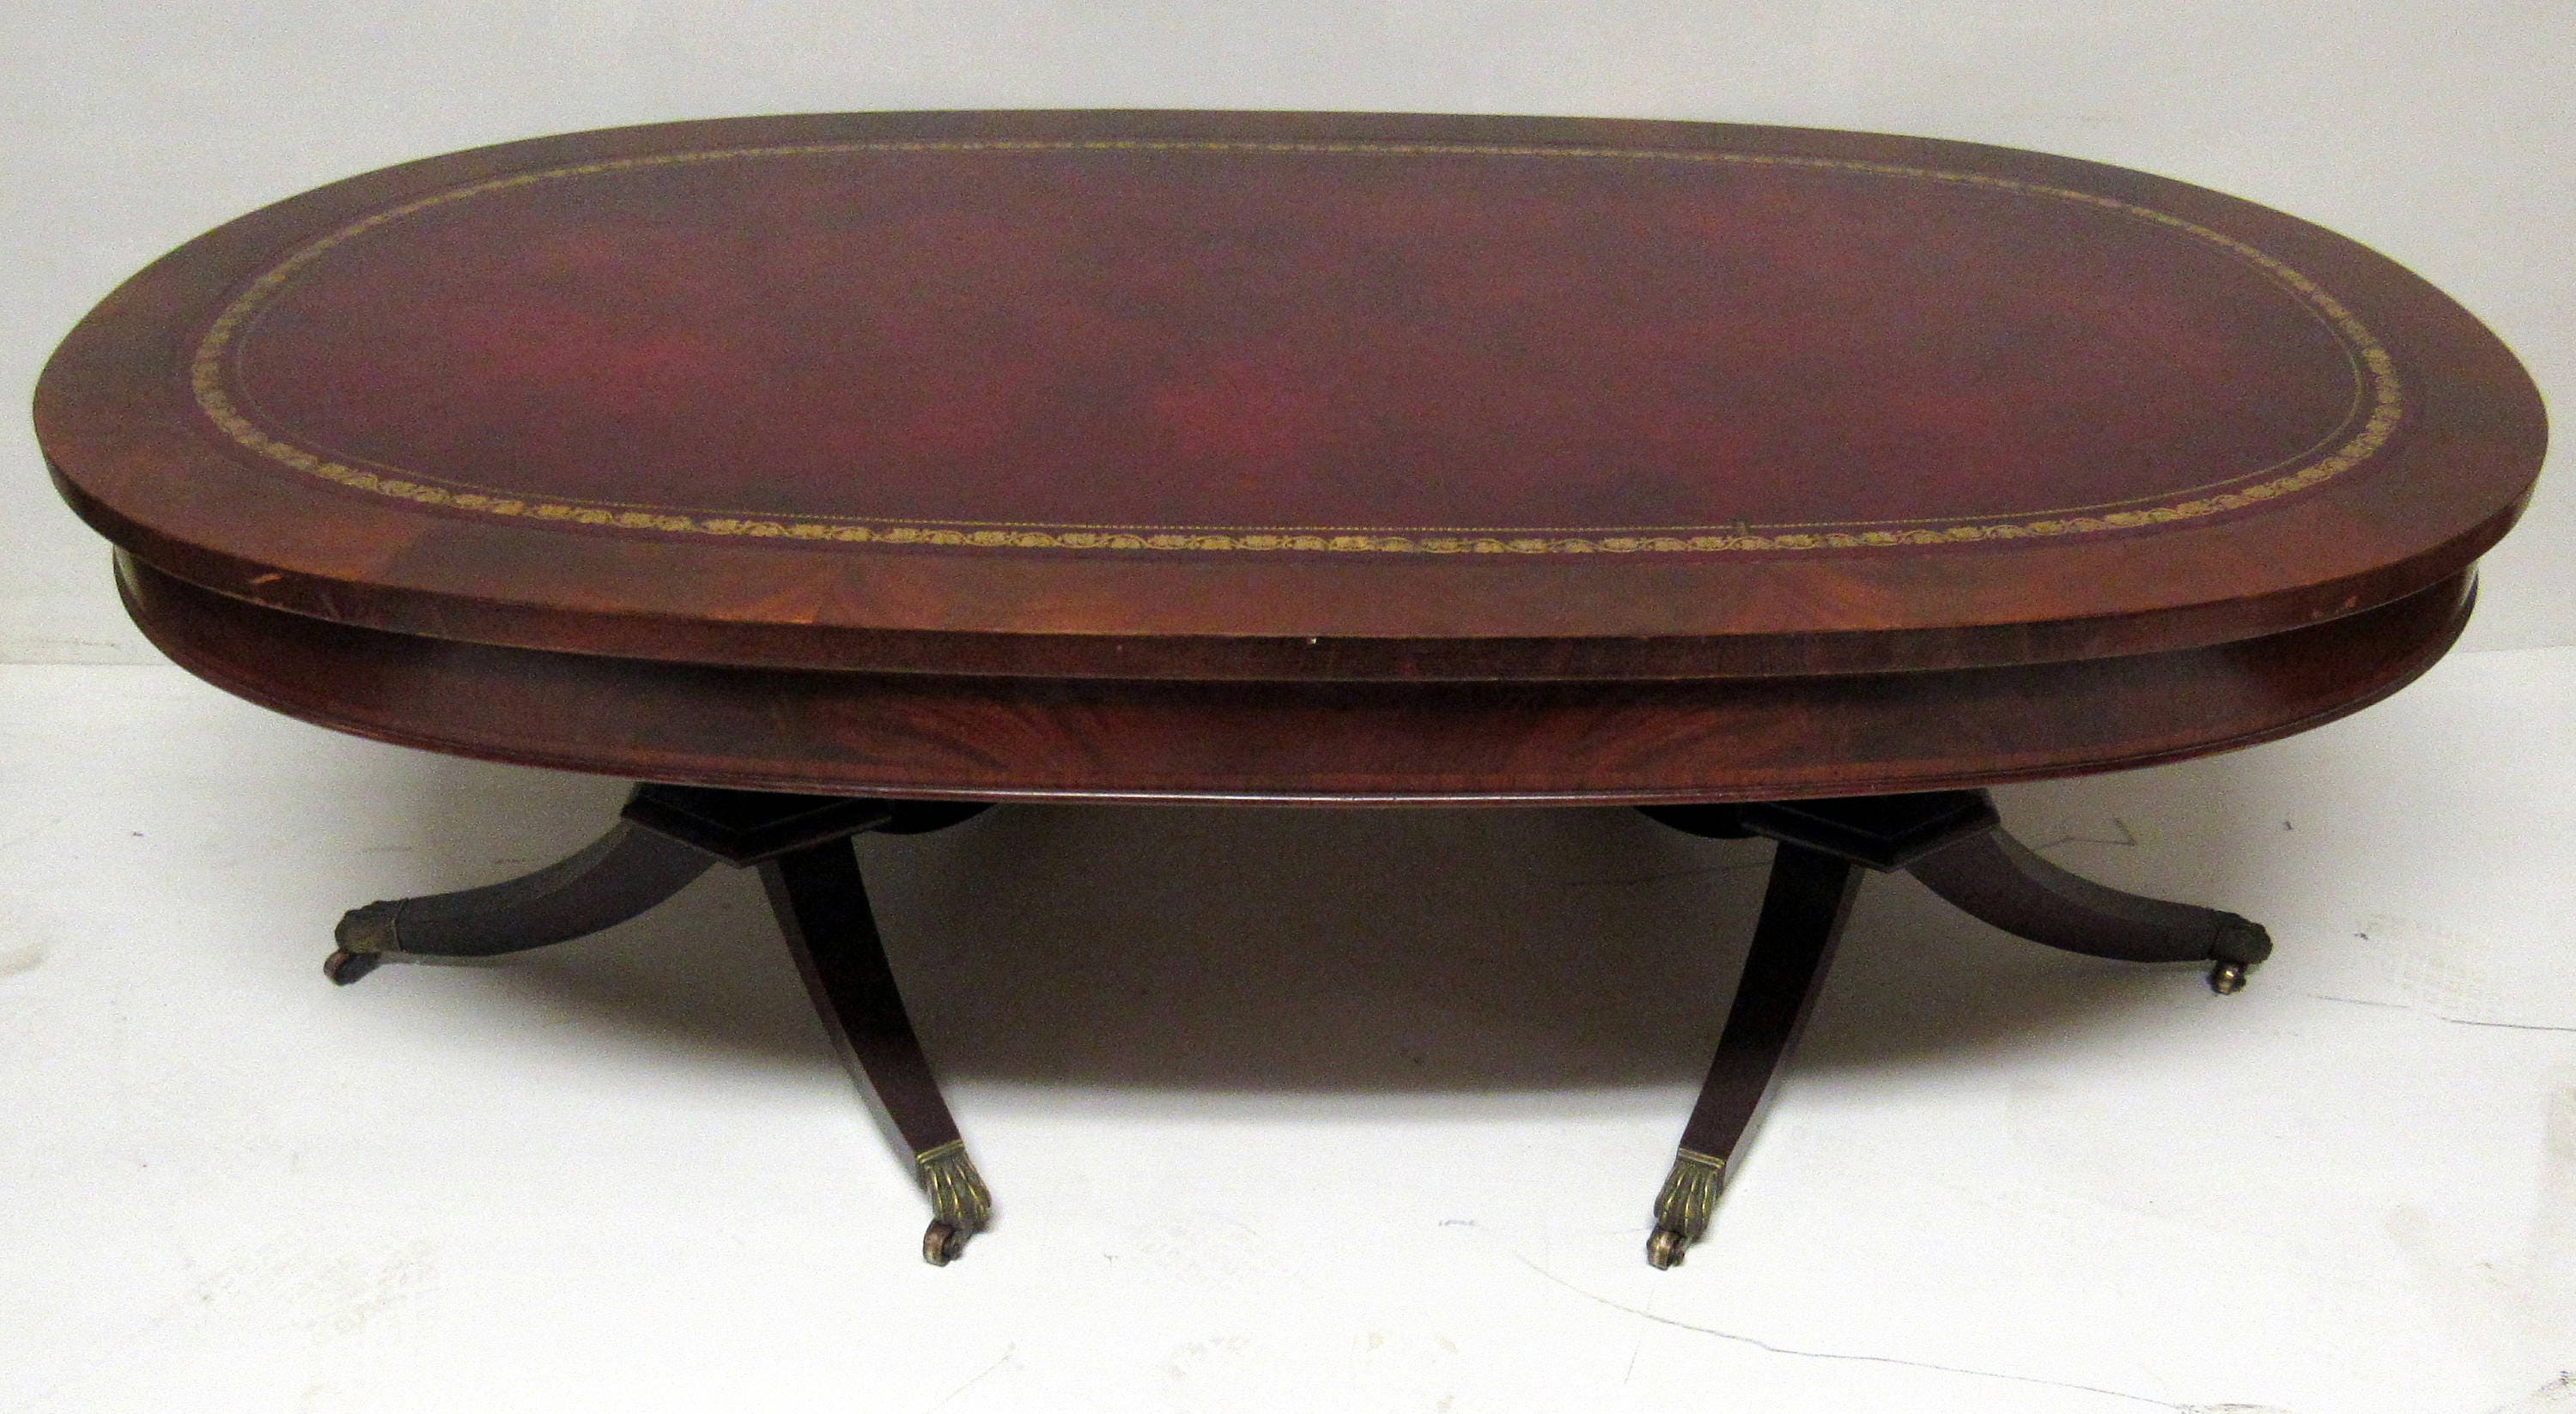 Flame mahogany coffee table oval shaped leather top Oval shaped coffee table